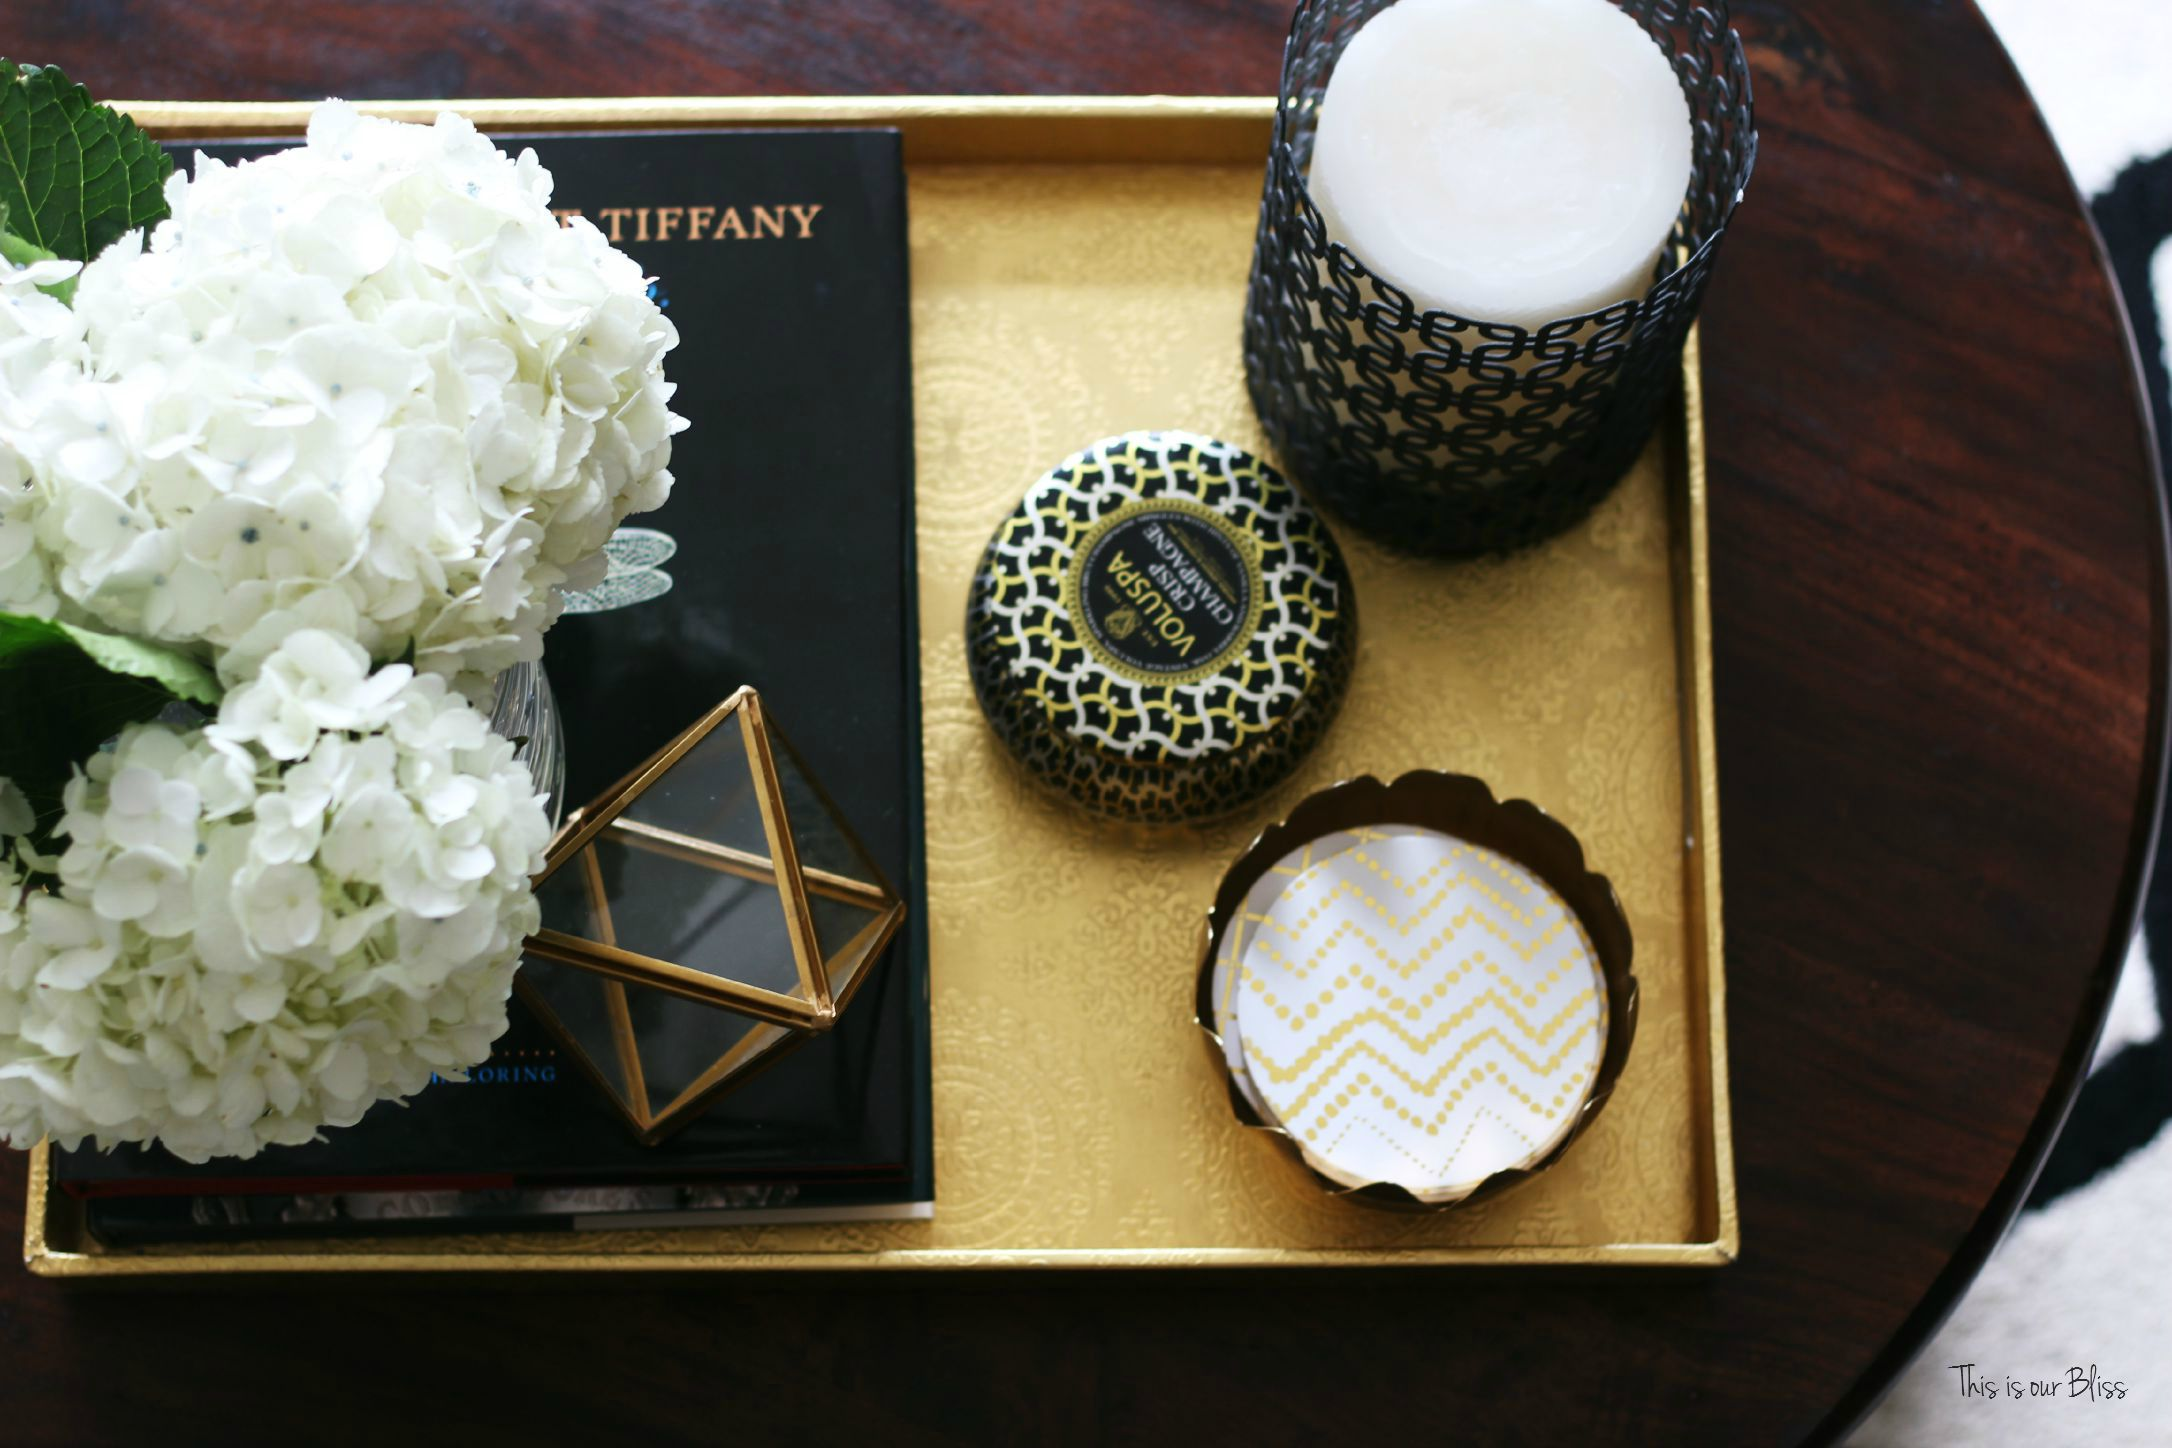 How to style a coffee table - coffee table styling - elements of a well-styled coffee table - Back to Basics 2 - This is our Bliss